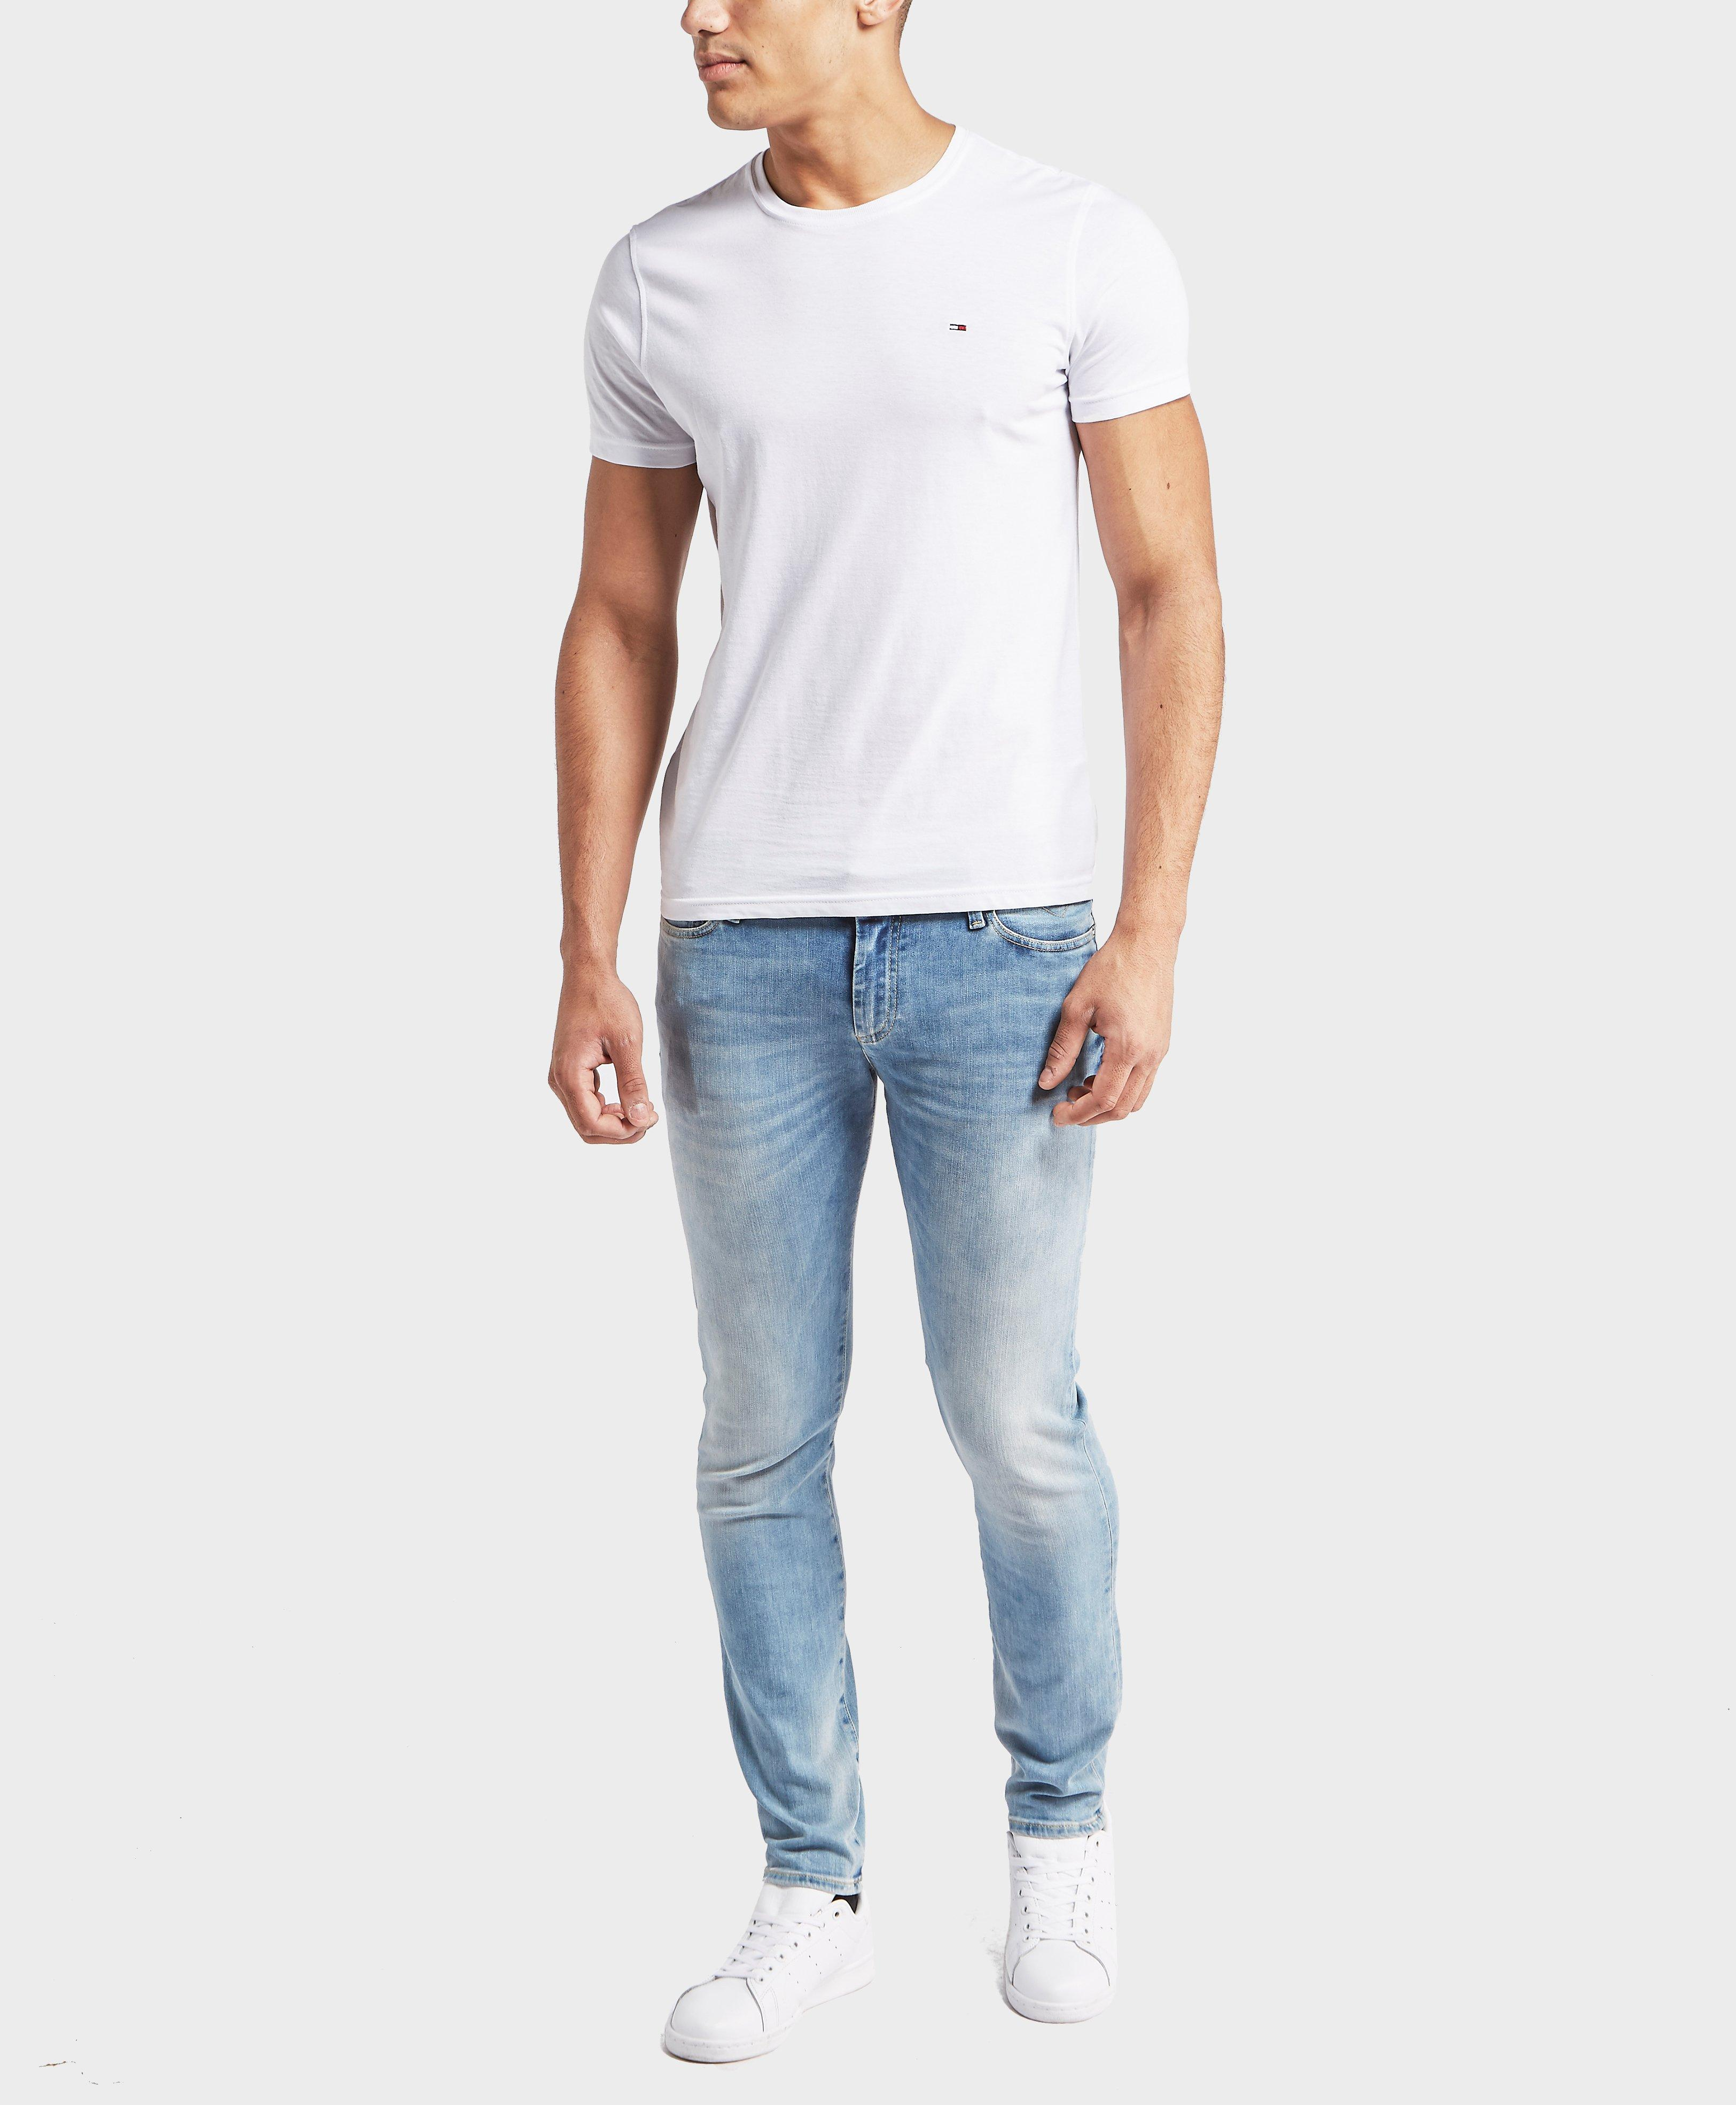 0e9abe56 Tommy Hilfiger Simon Skinny Jeans in Blue for Men - Lyst